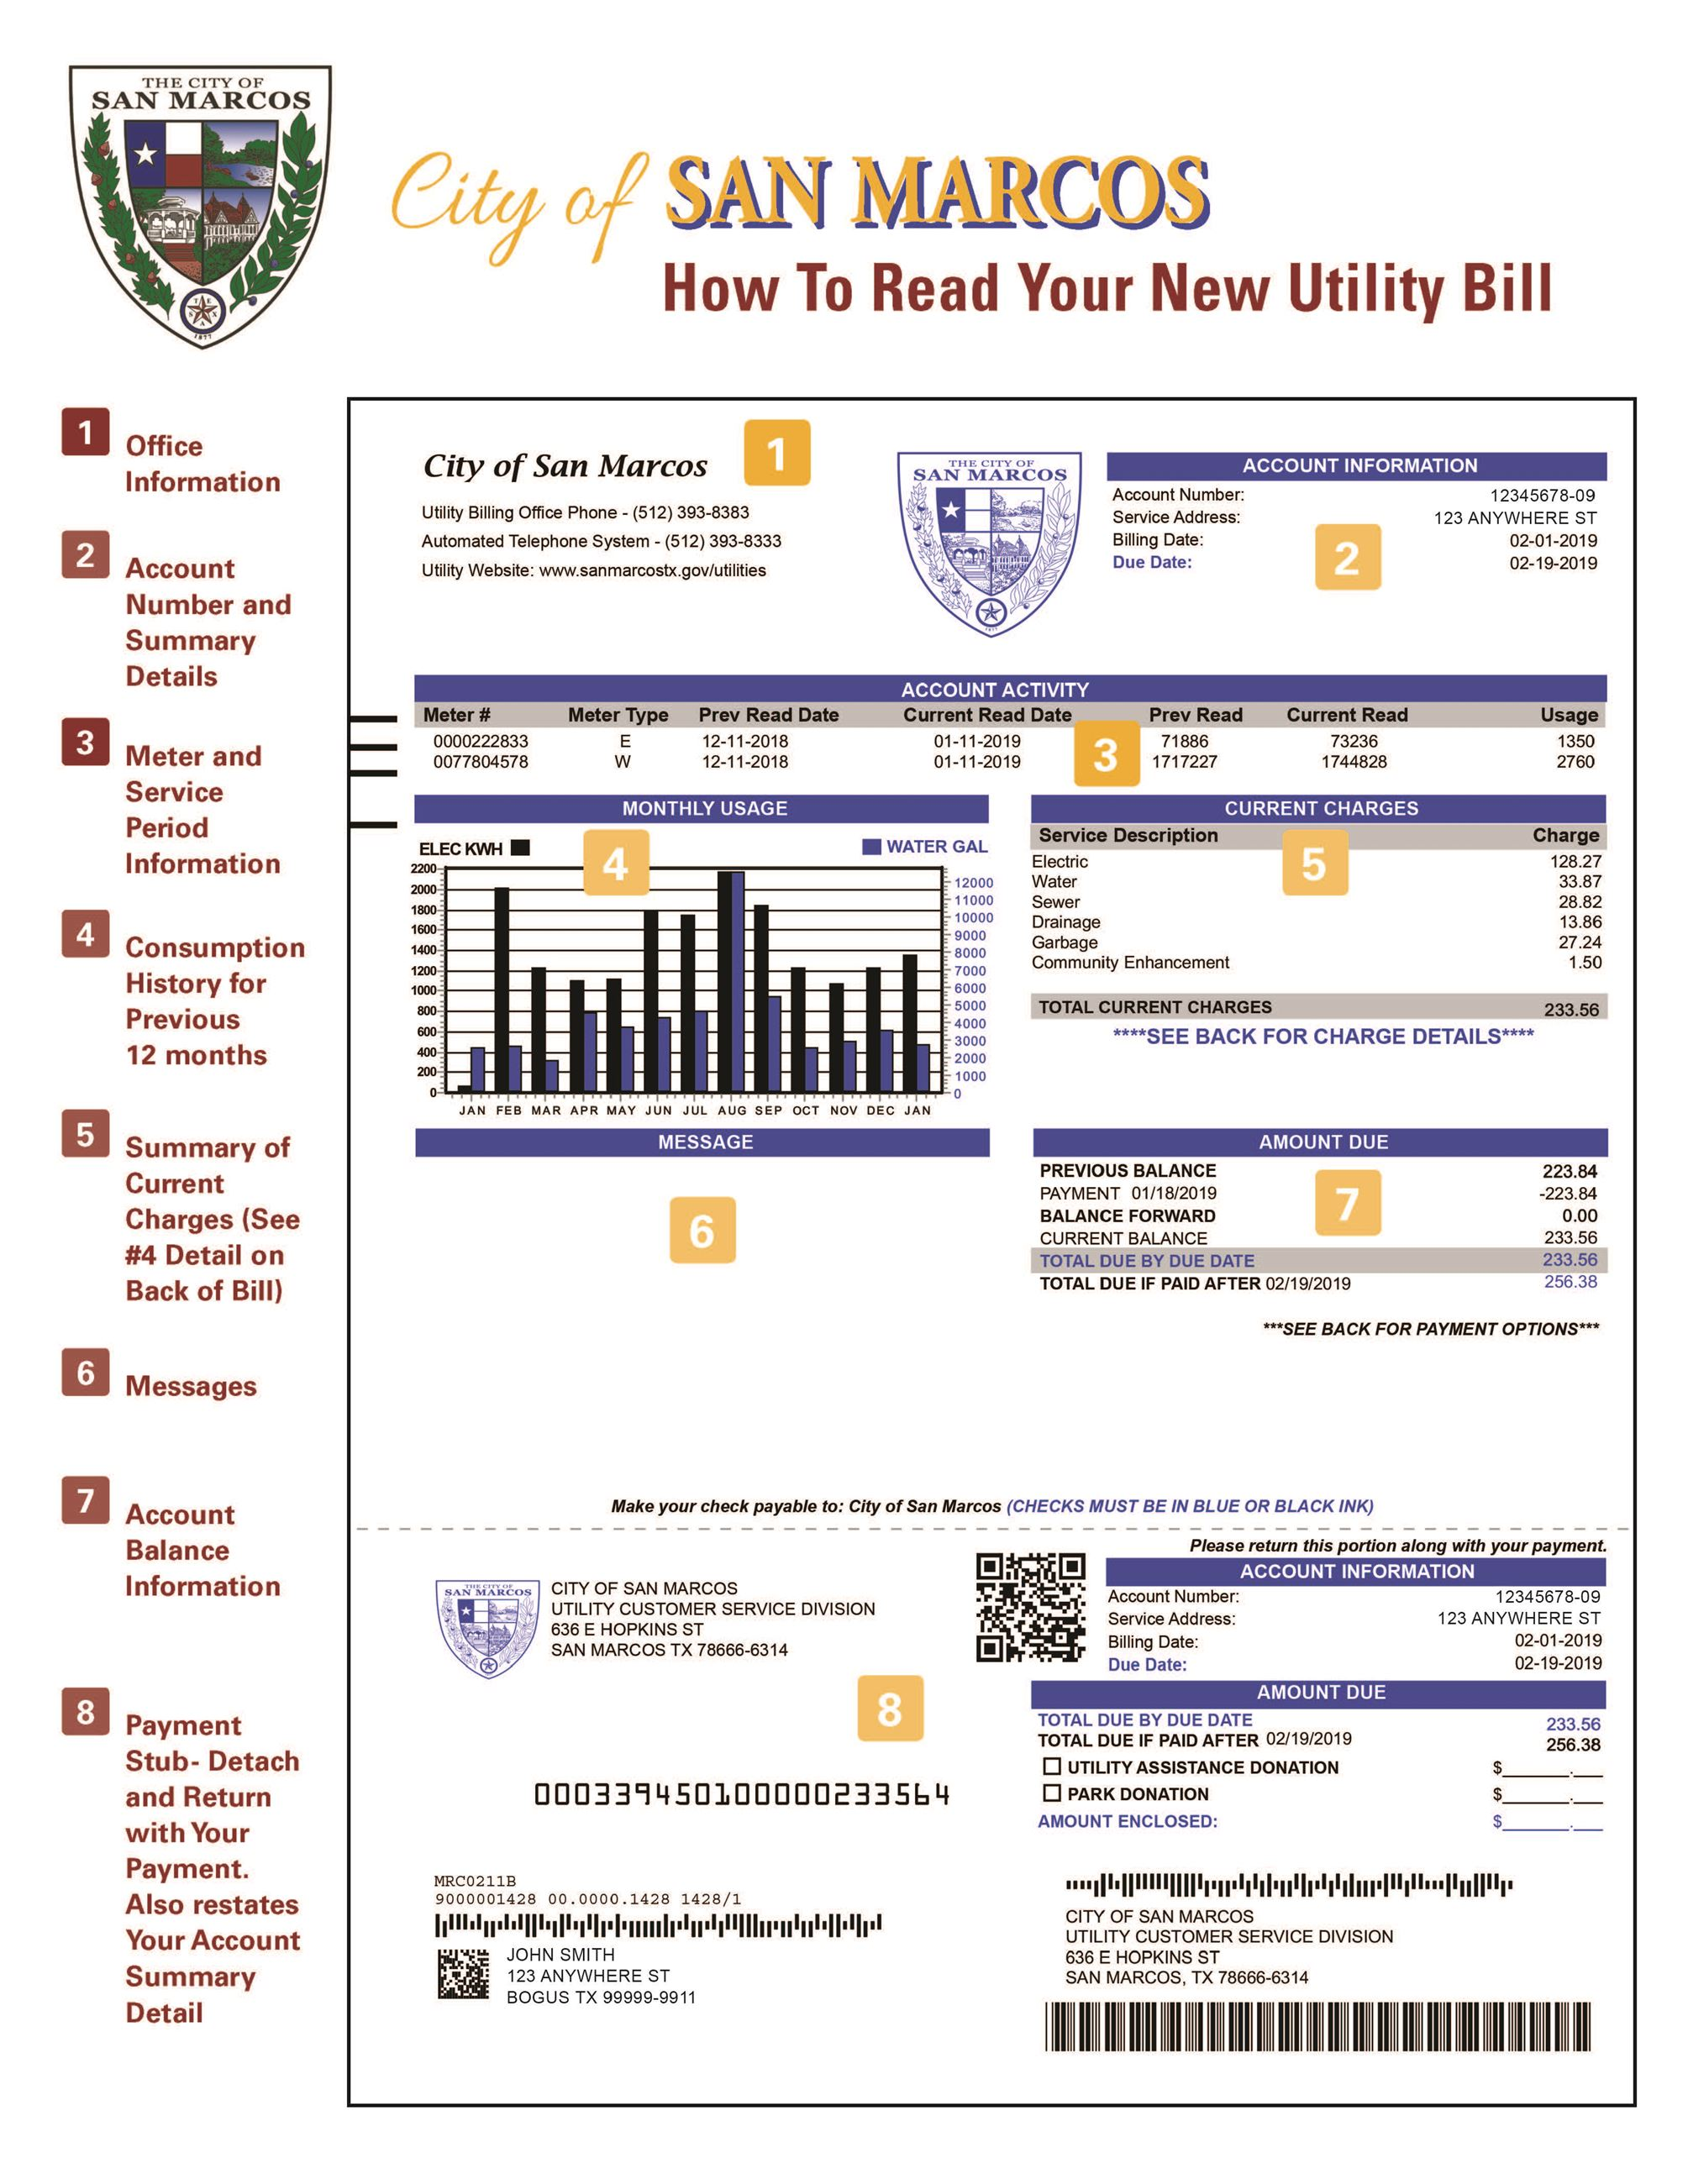 City of San Marcos Utility How To Read Your Bill 2019 Page 1